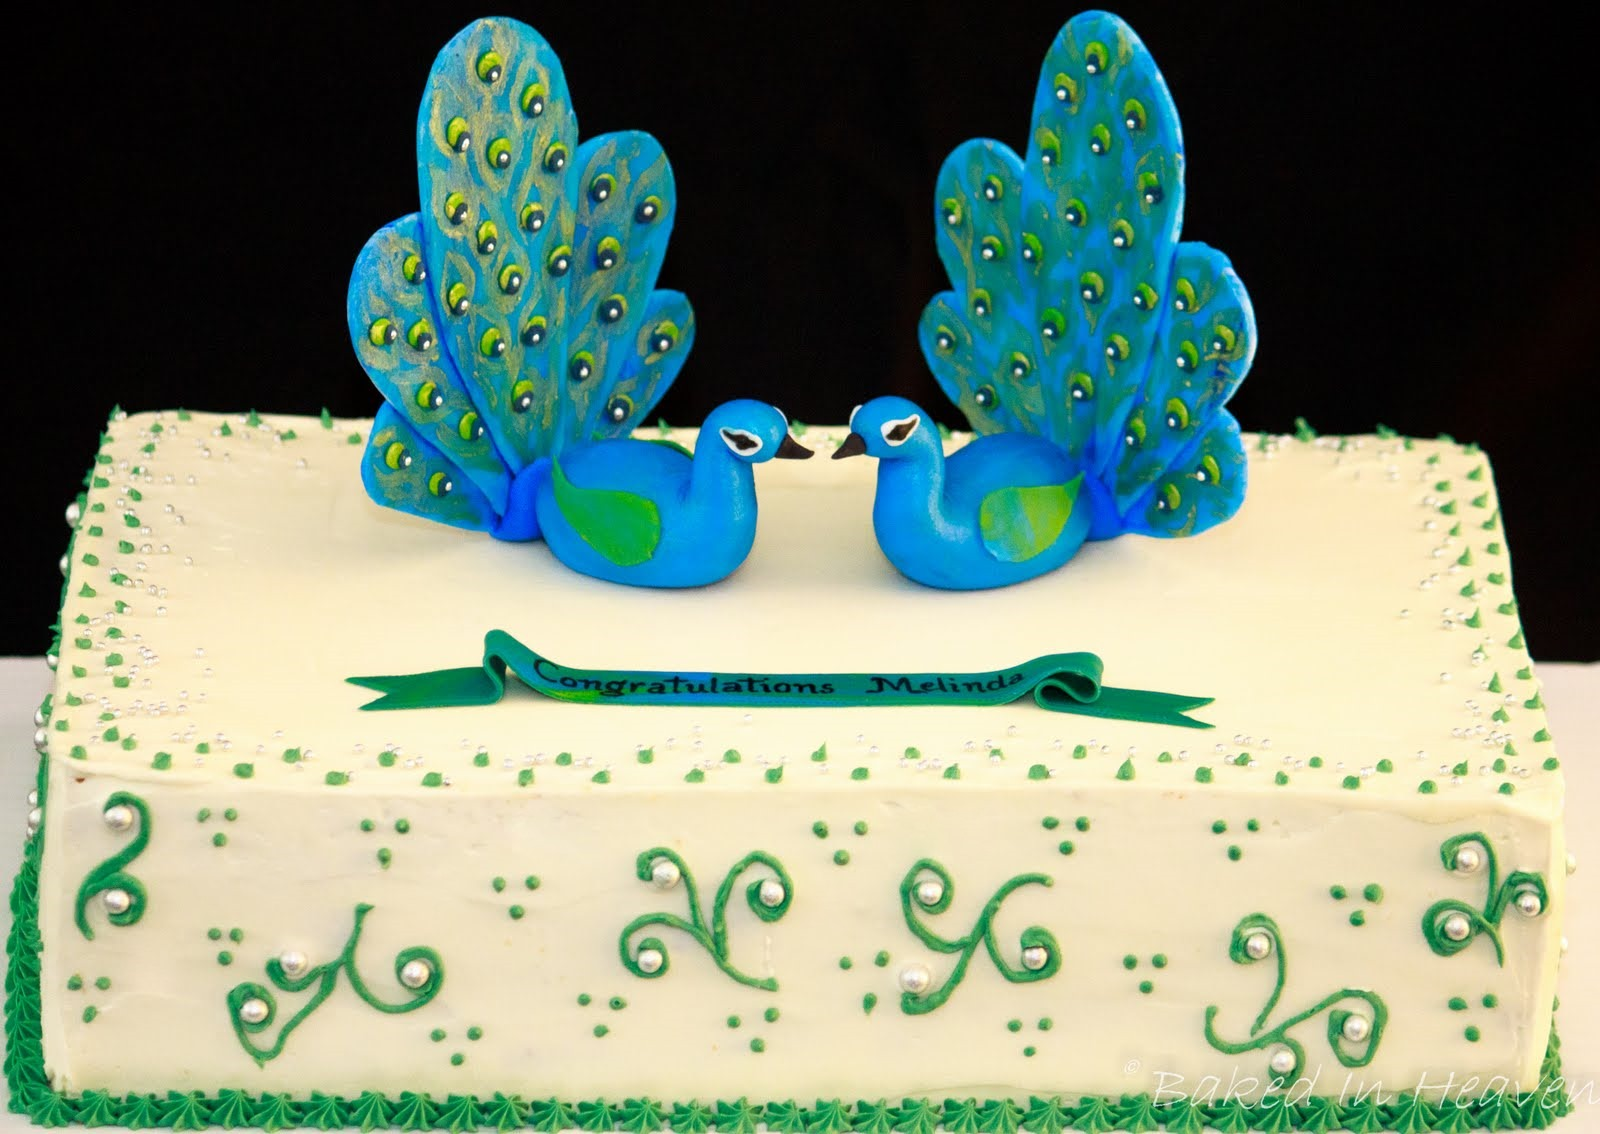 Cake Images With Design : Peacock Cakes   Decoration Ideas Little Birthday Cakes